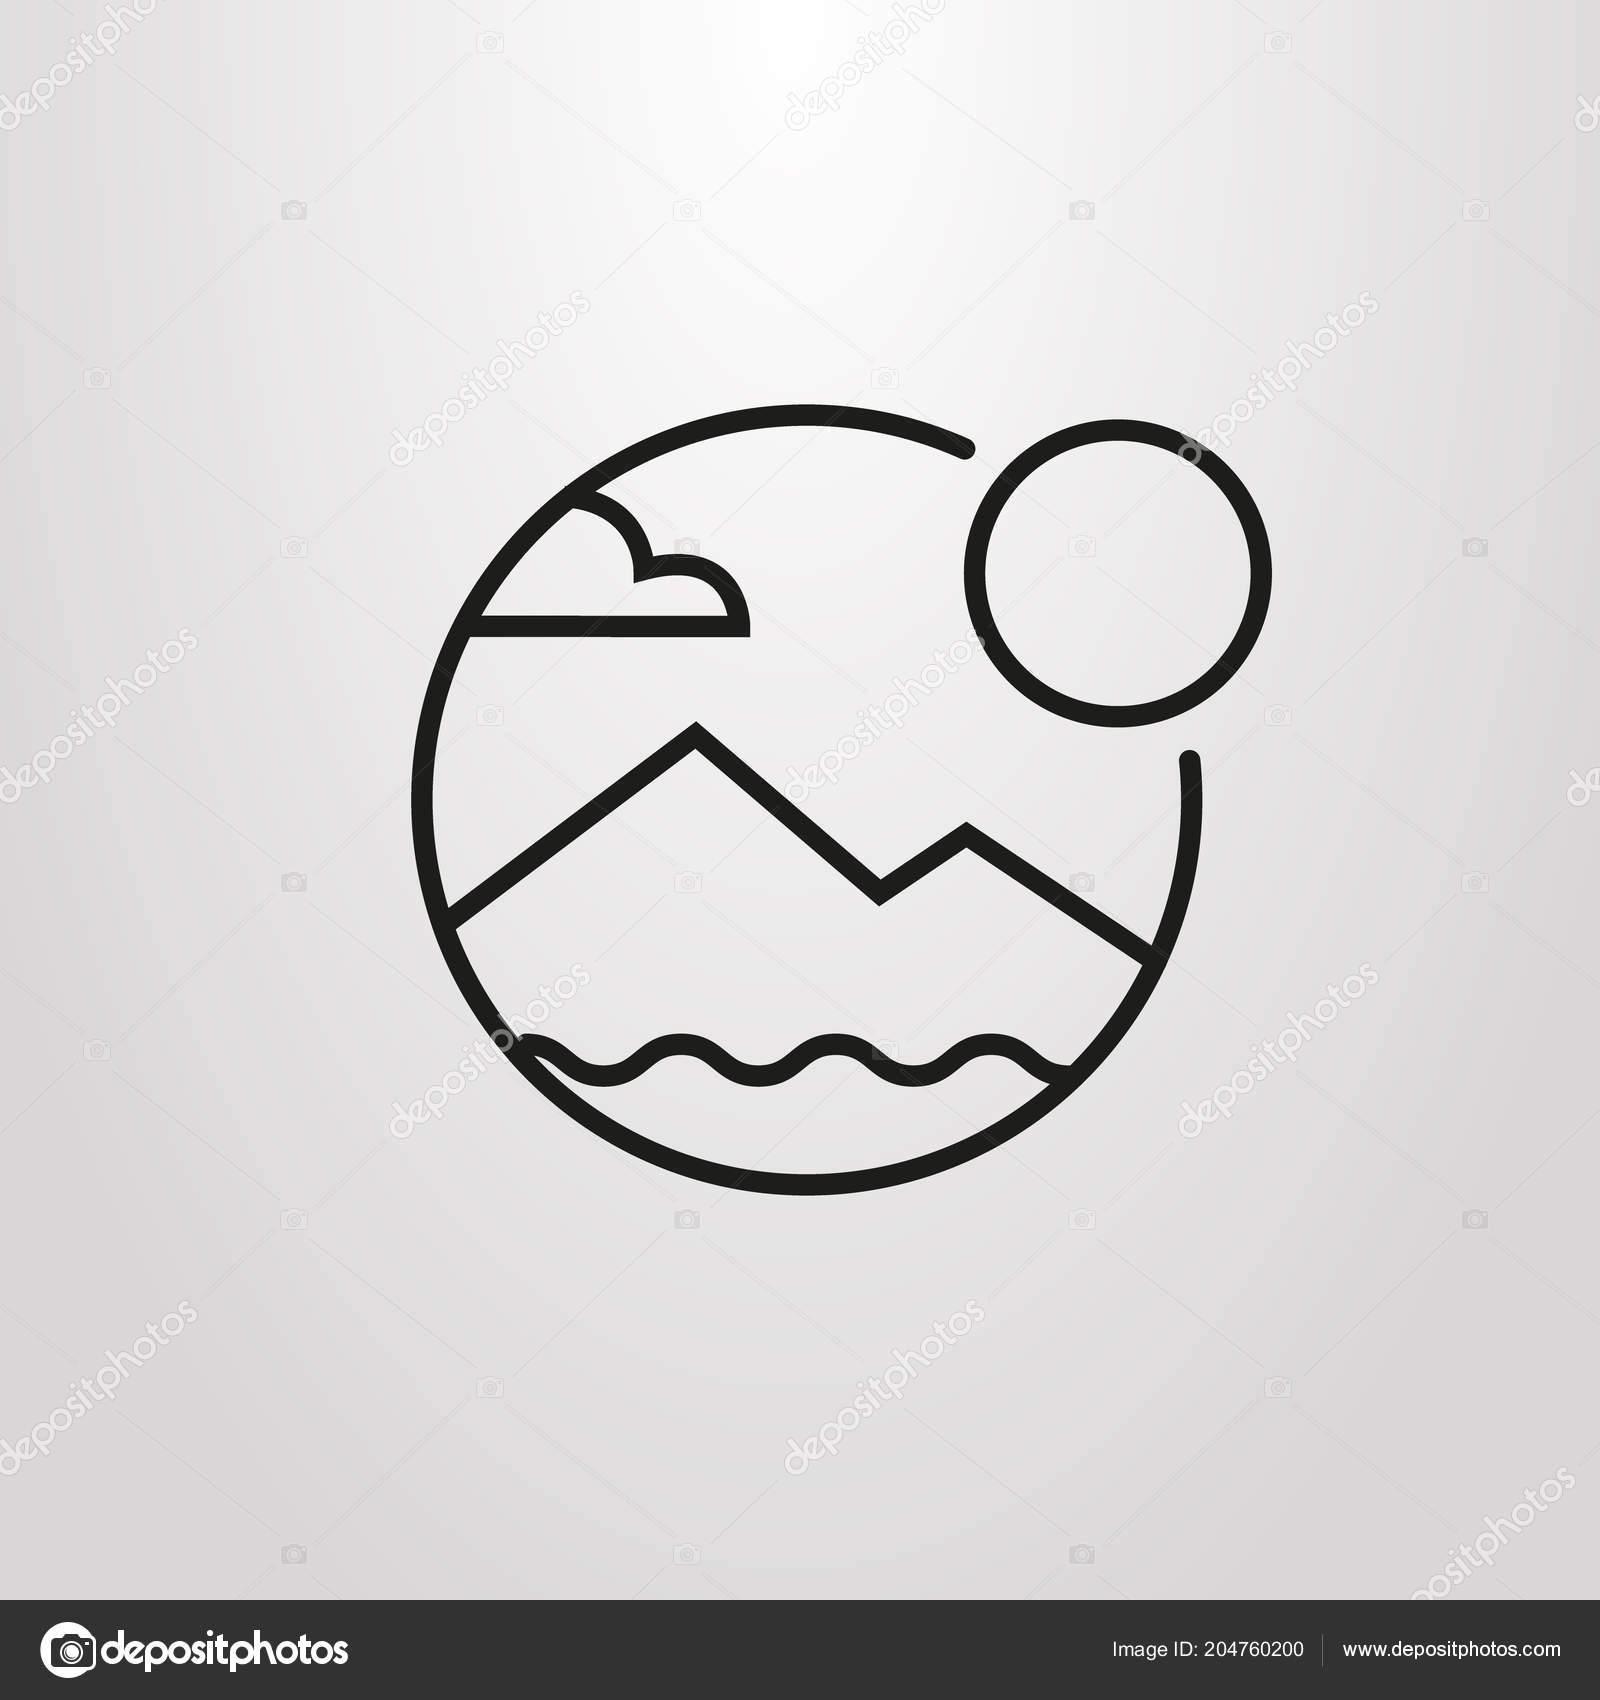 Black and white simple vector line art round symbol of mountain landscape and sun vector by gorro nicko gmail com